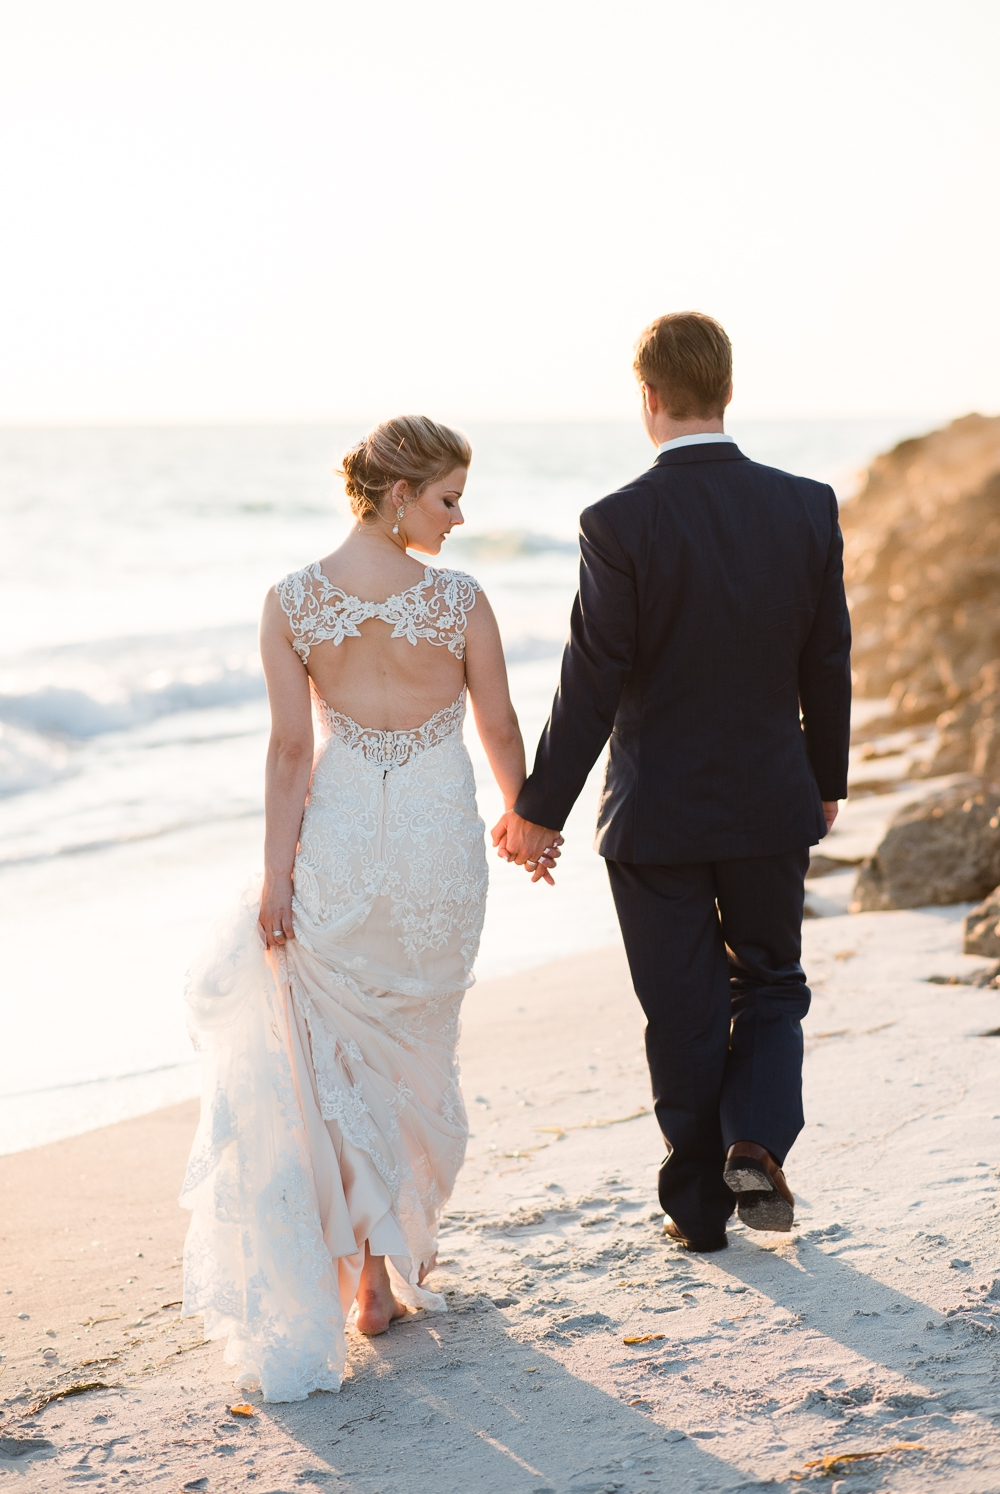 2016 HLM Wedding Beach Shoot 16.jpg